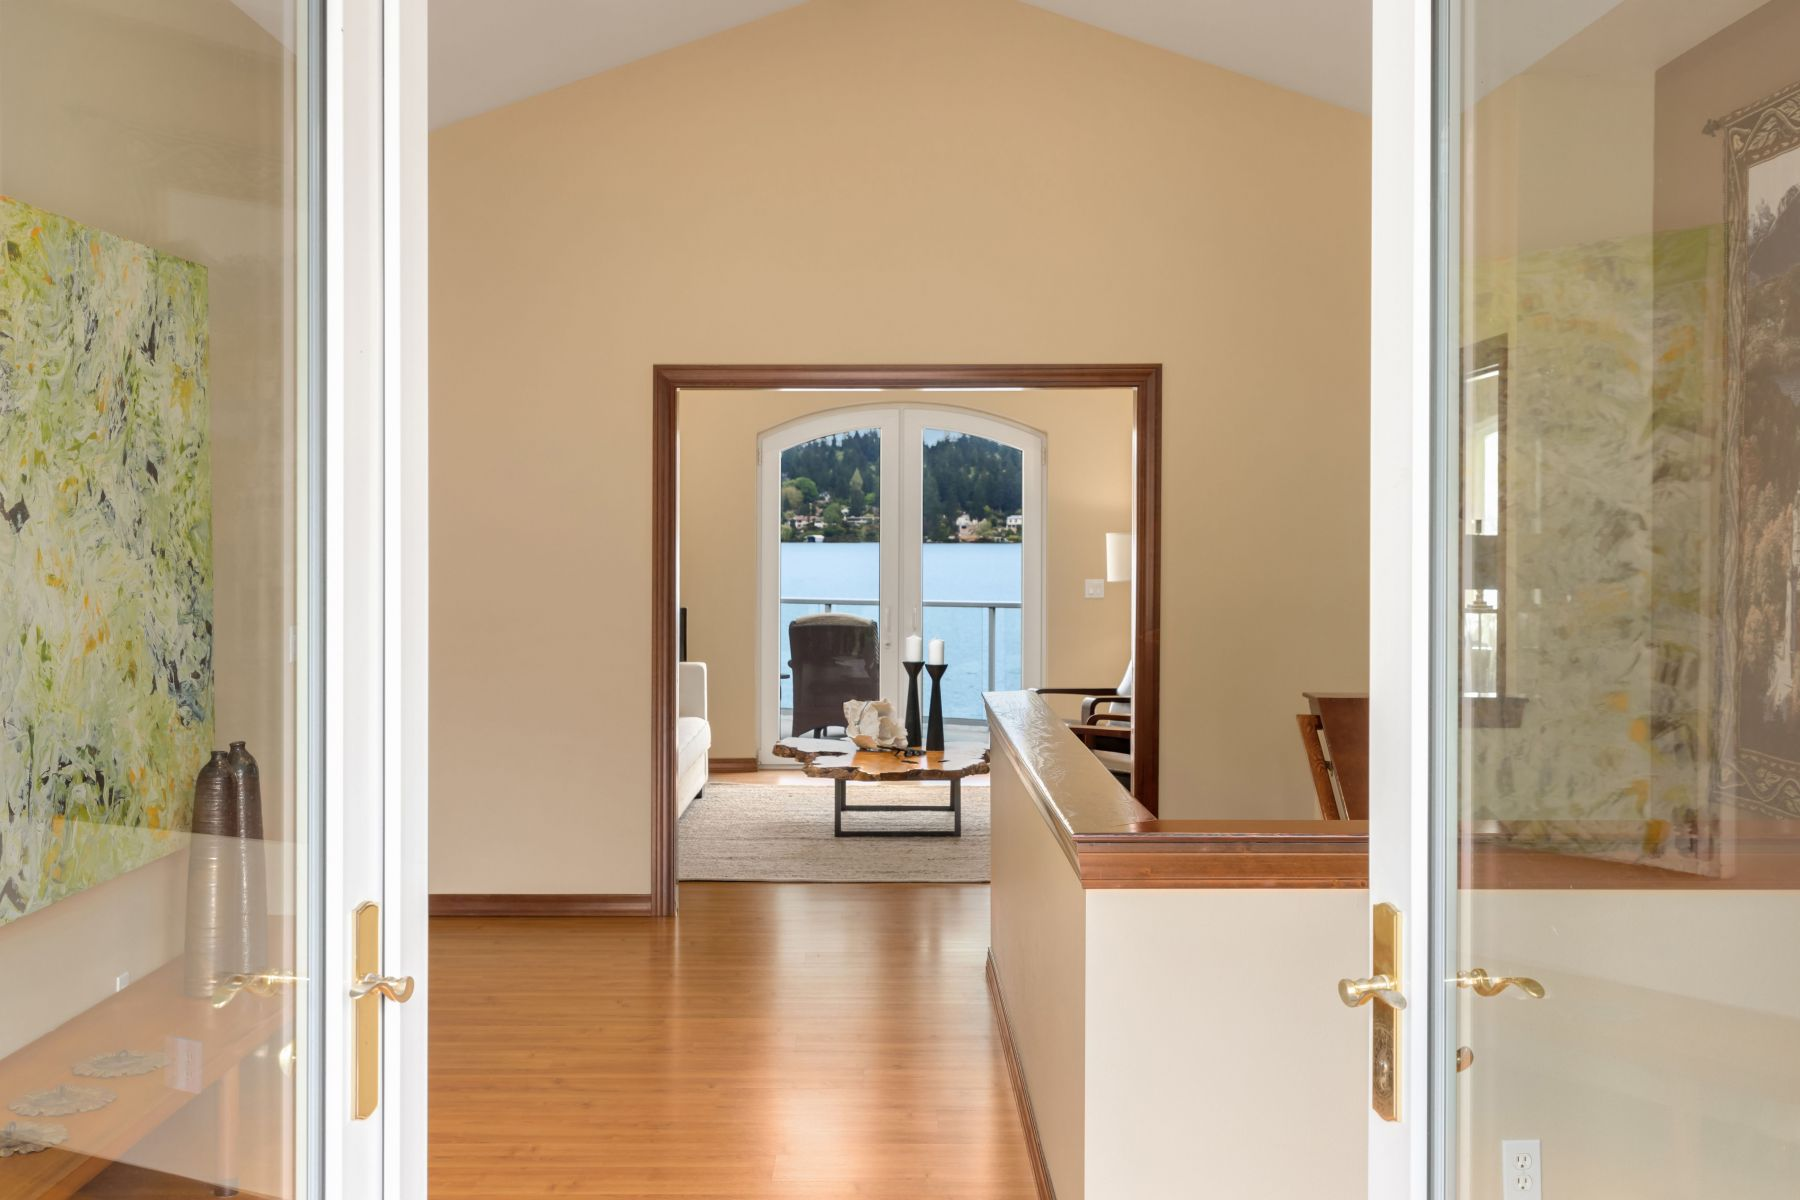 7016 55th Ave S, Seattle | Represented by Mary Norris